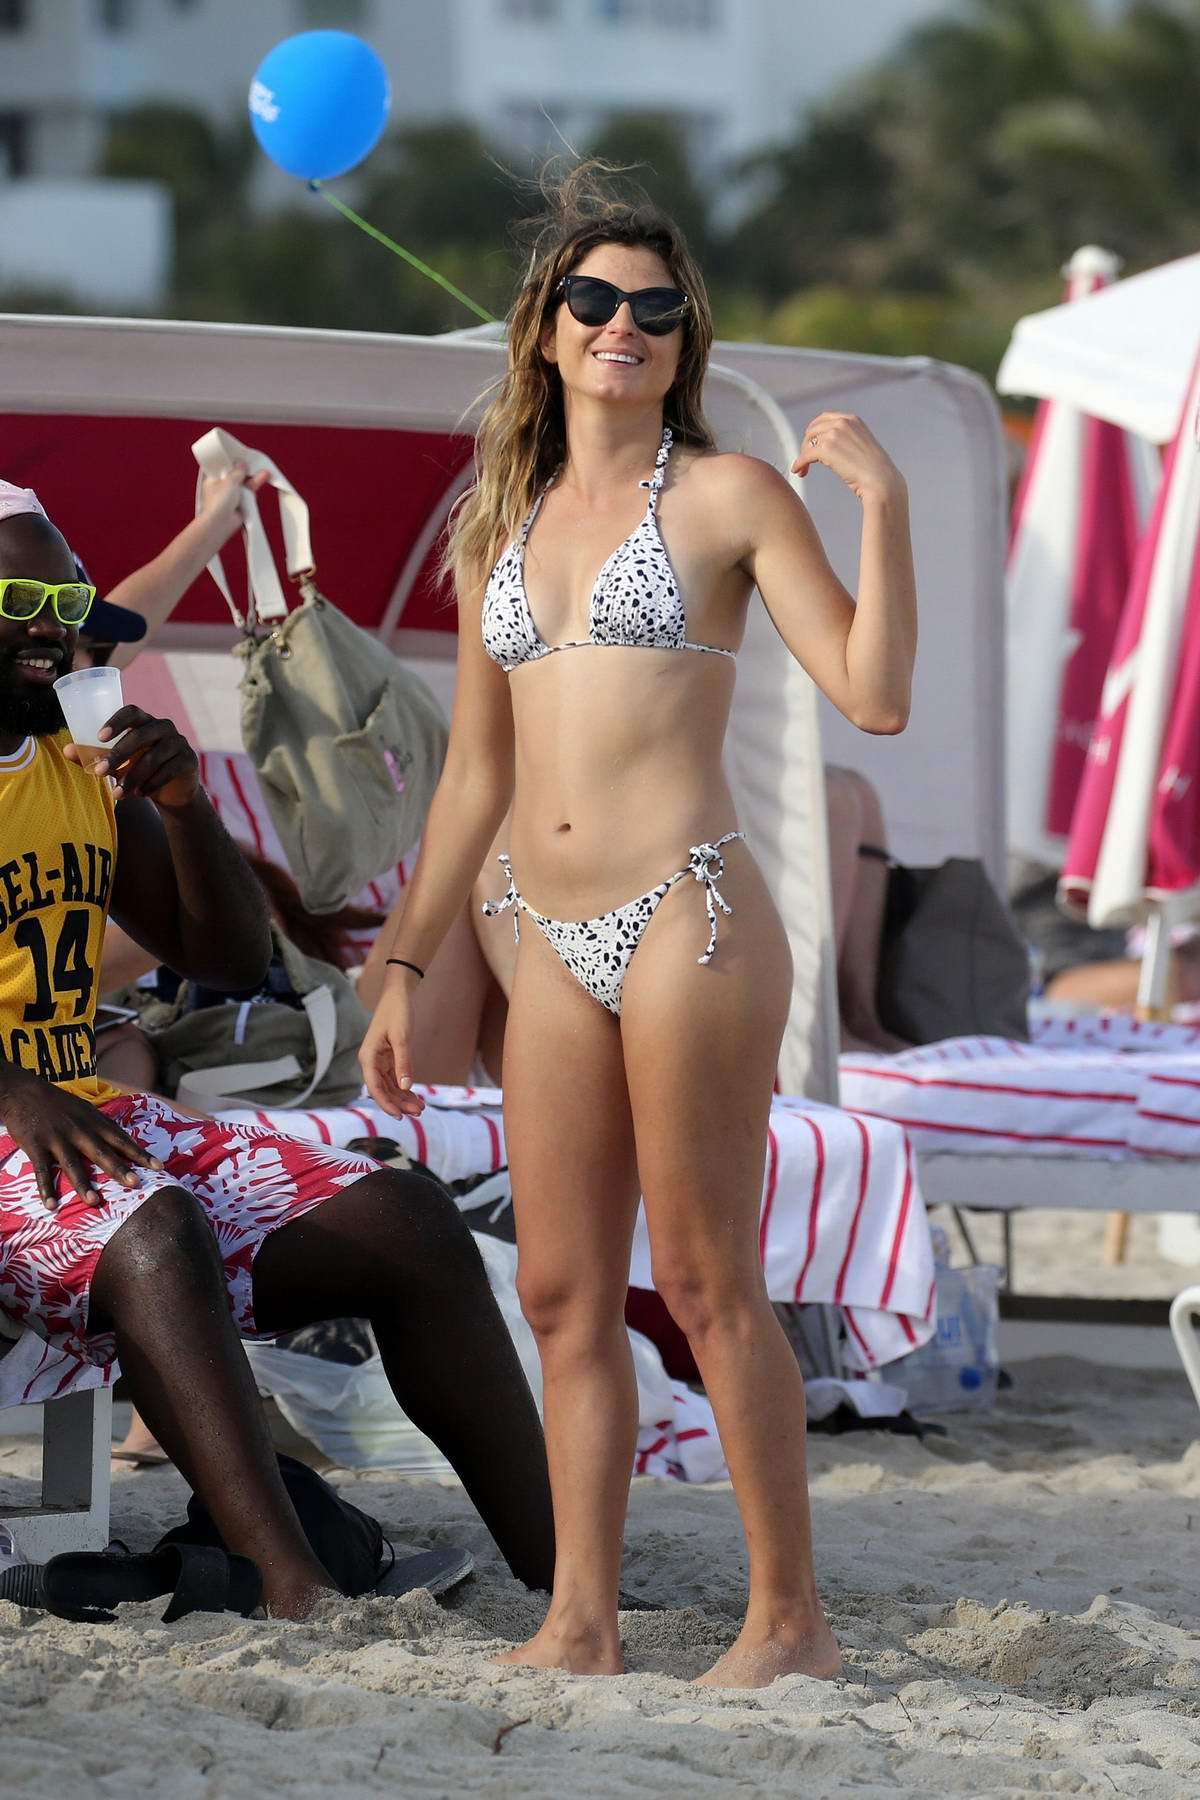 Anastasia Ashley wears a string bikini while she spends a day on the beach with her boyfriend in Miami, Florida